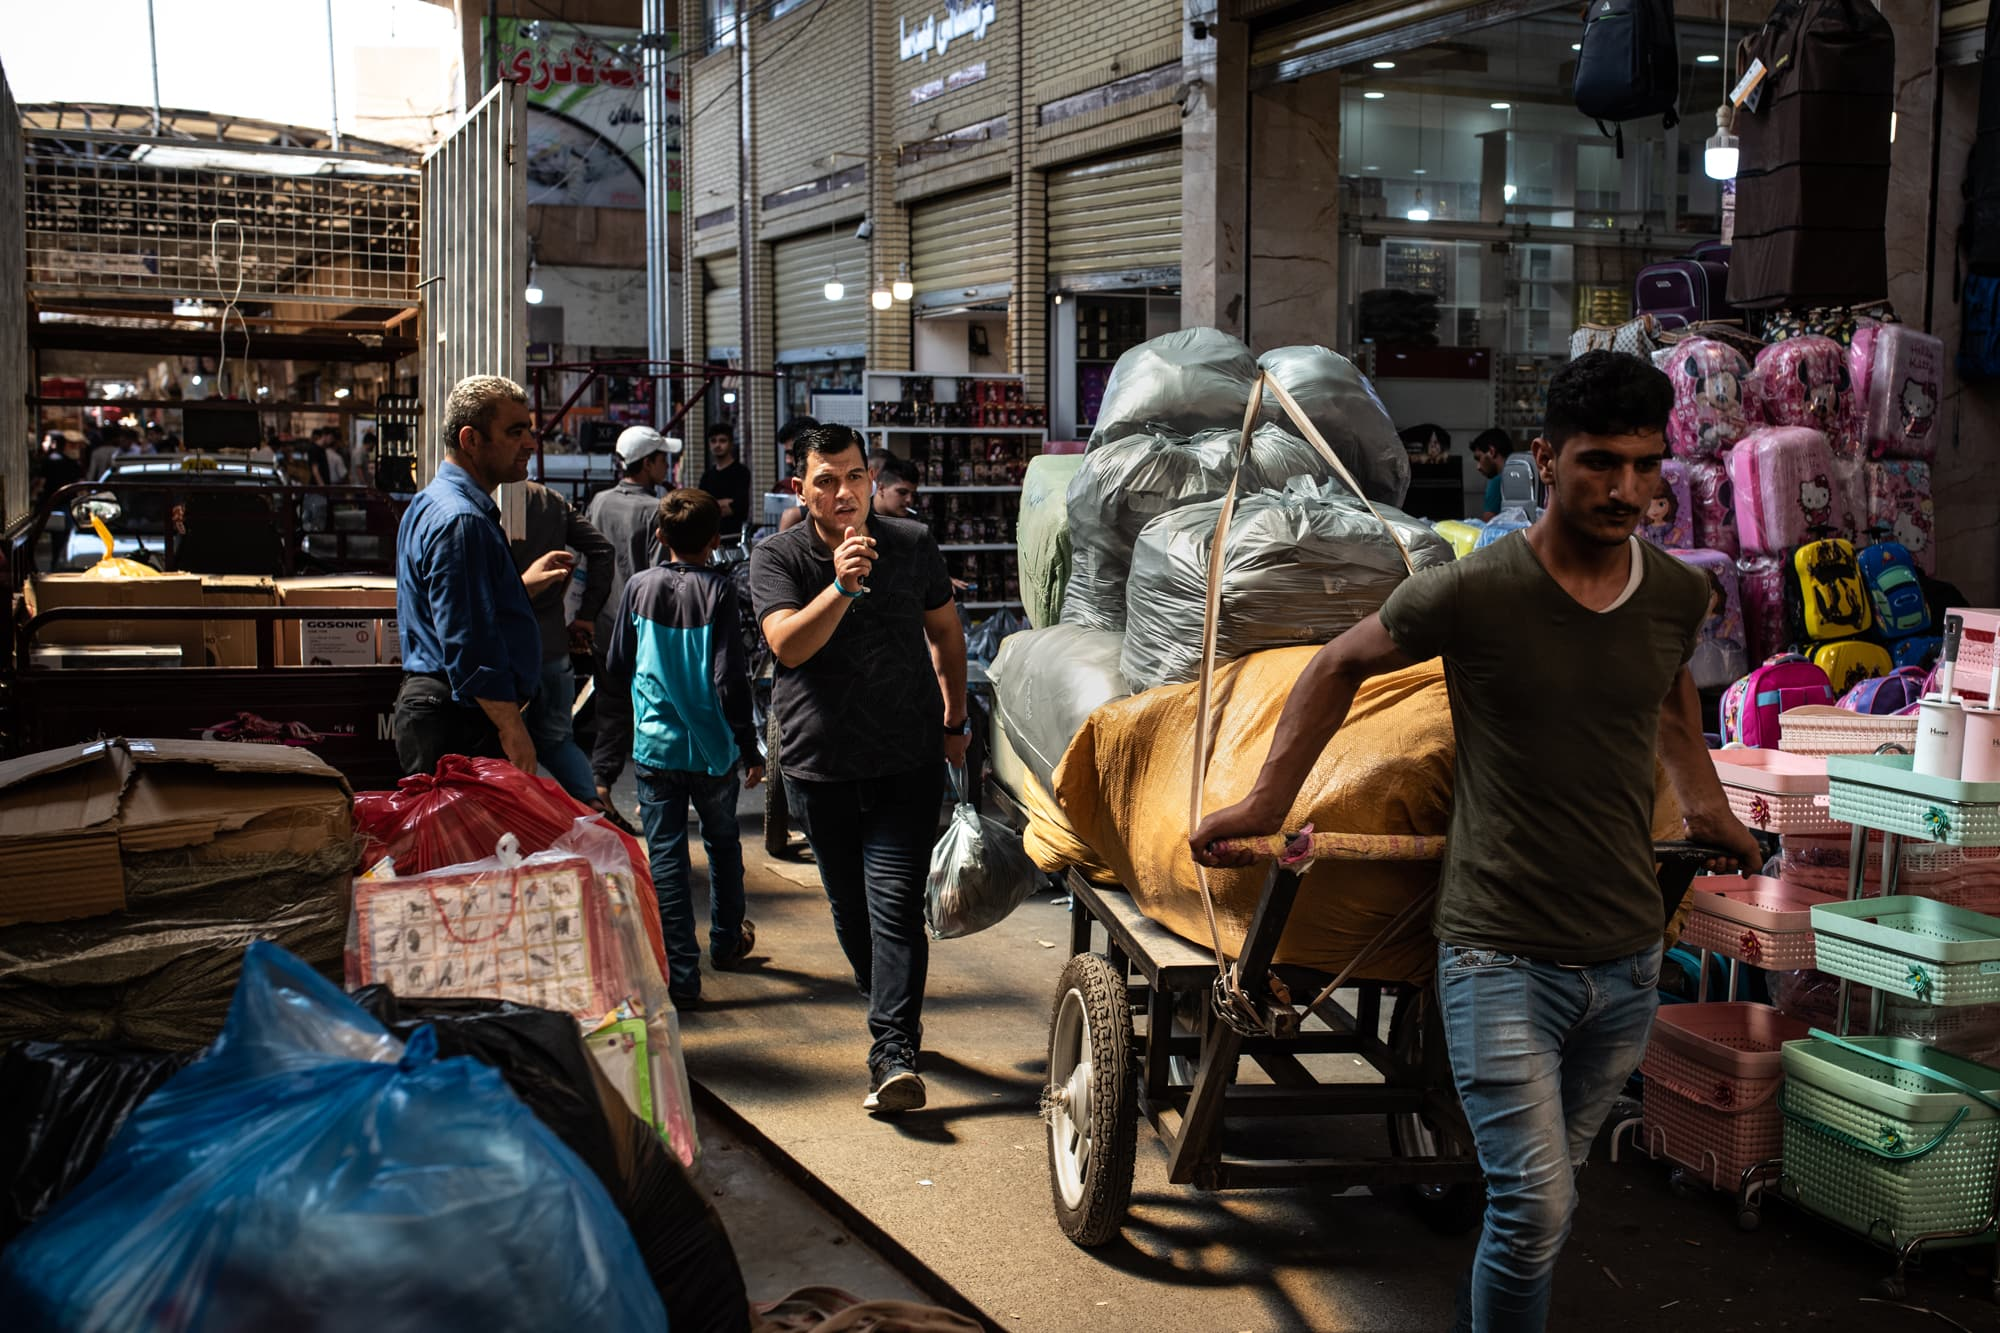 Abdullah Kurdi accompanies his newly bought school uniforms whilst they are being carried to his car through the busy market in Erbil, Iraq, on the 01.09.2019.